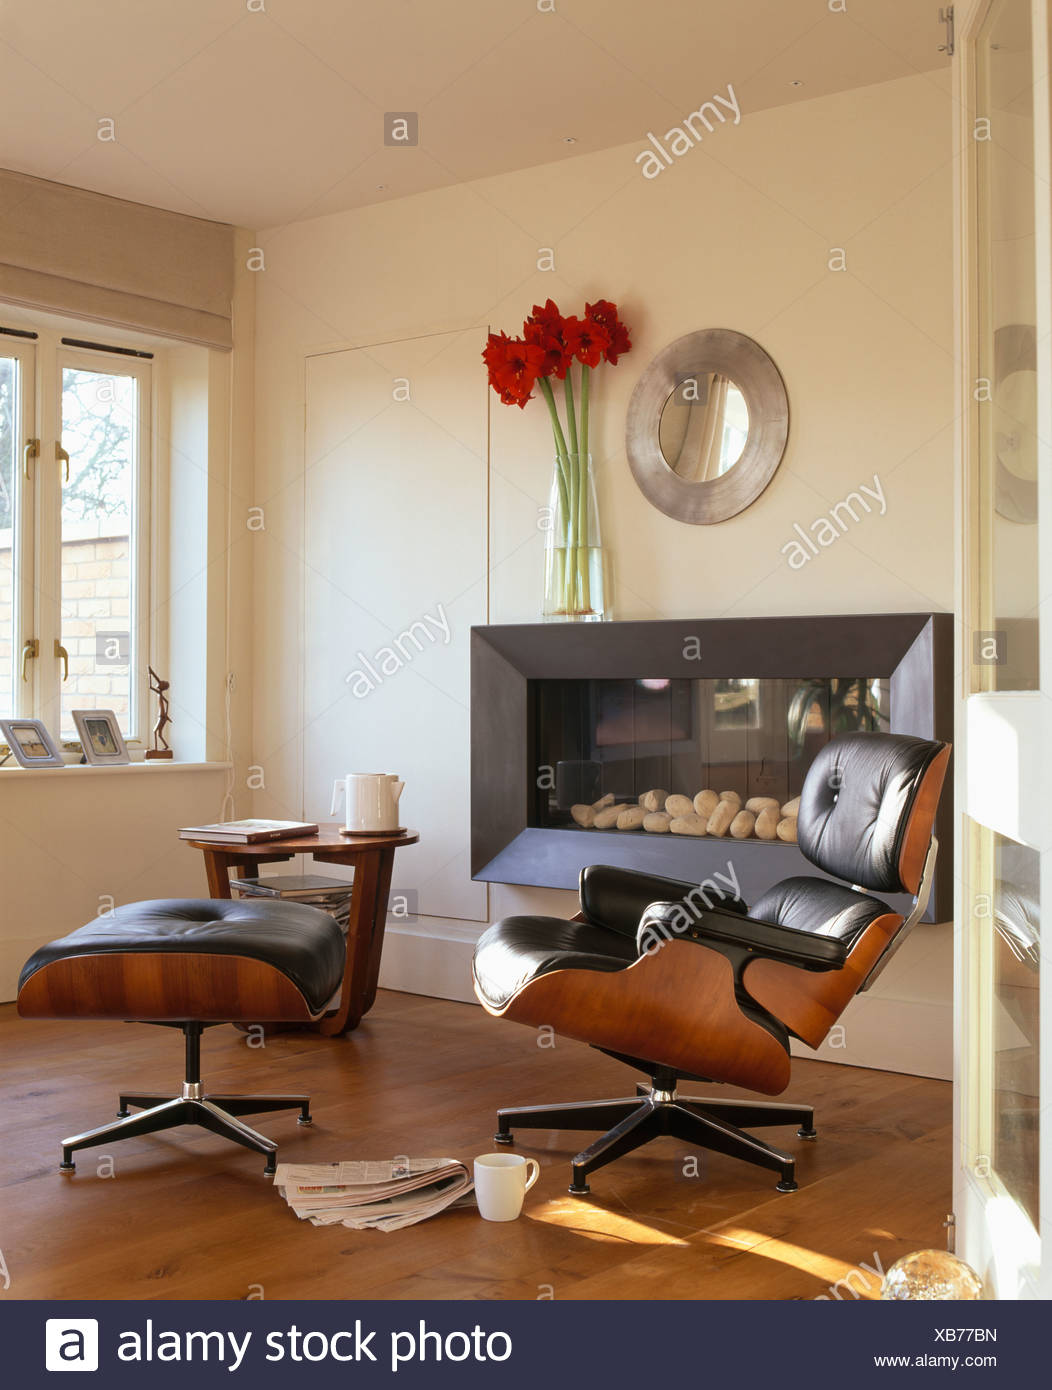 Charles Eames Chair High Resolution Stock Photography And Images Alamy